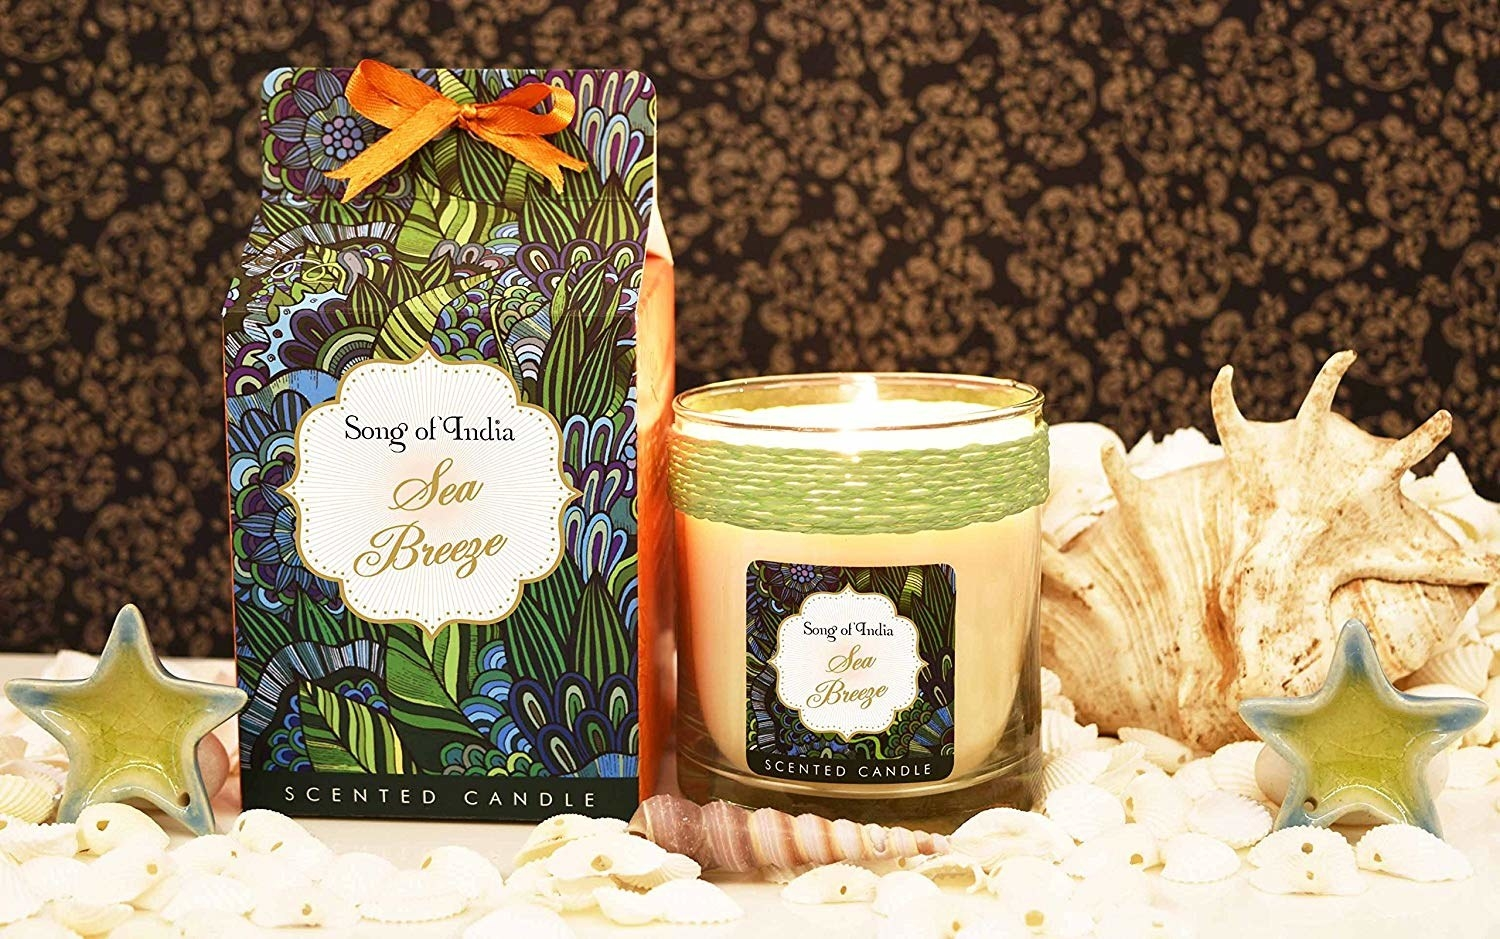 Packaging of the sea breeze scented candle